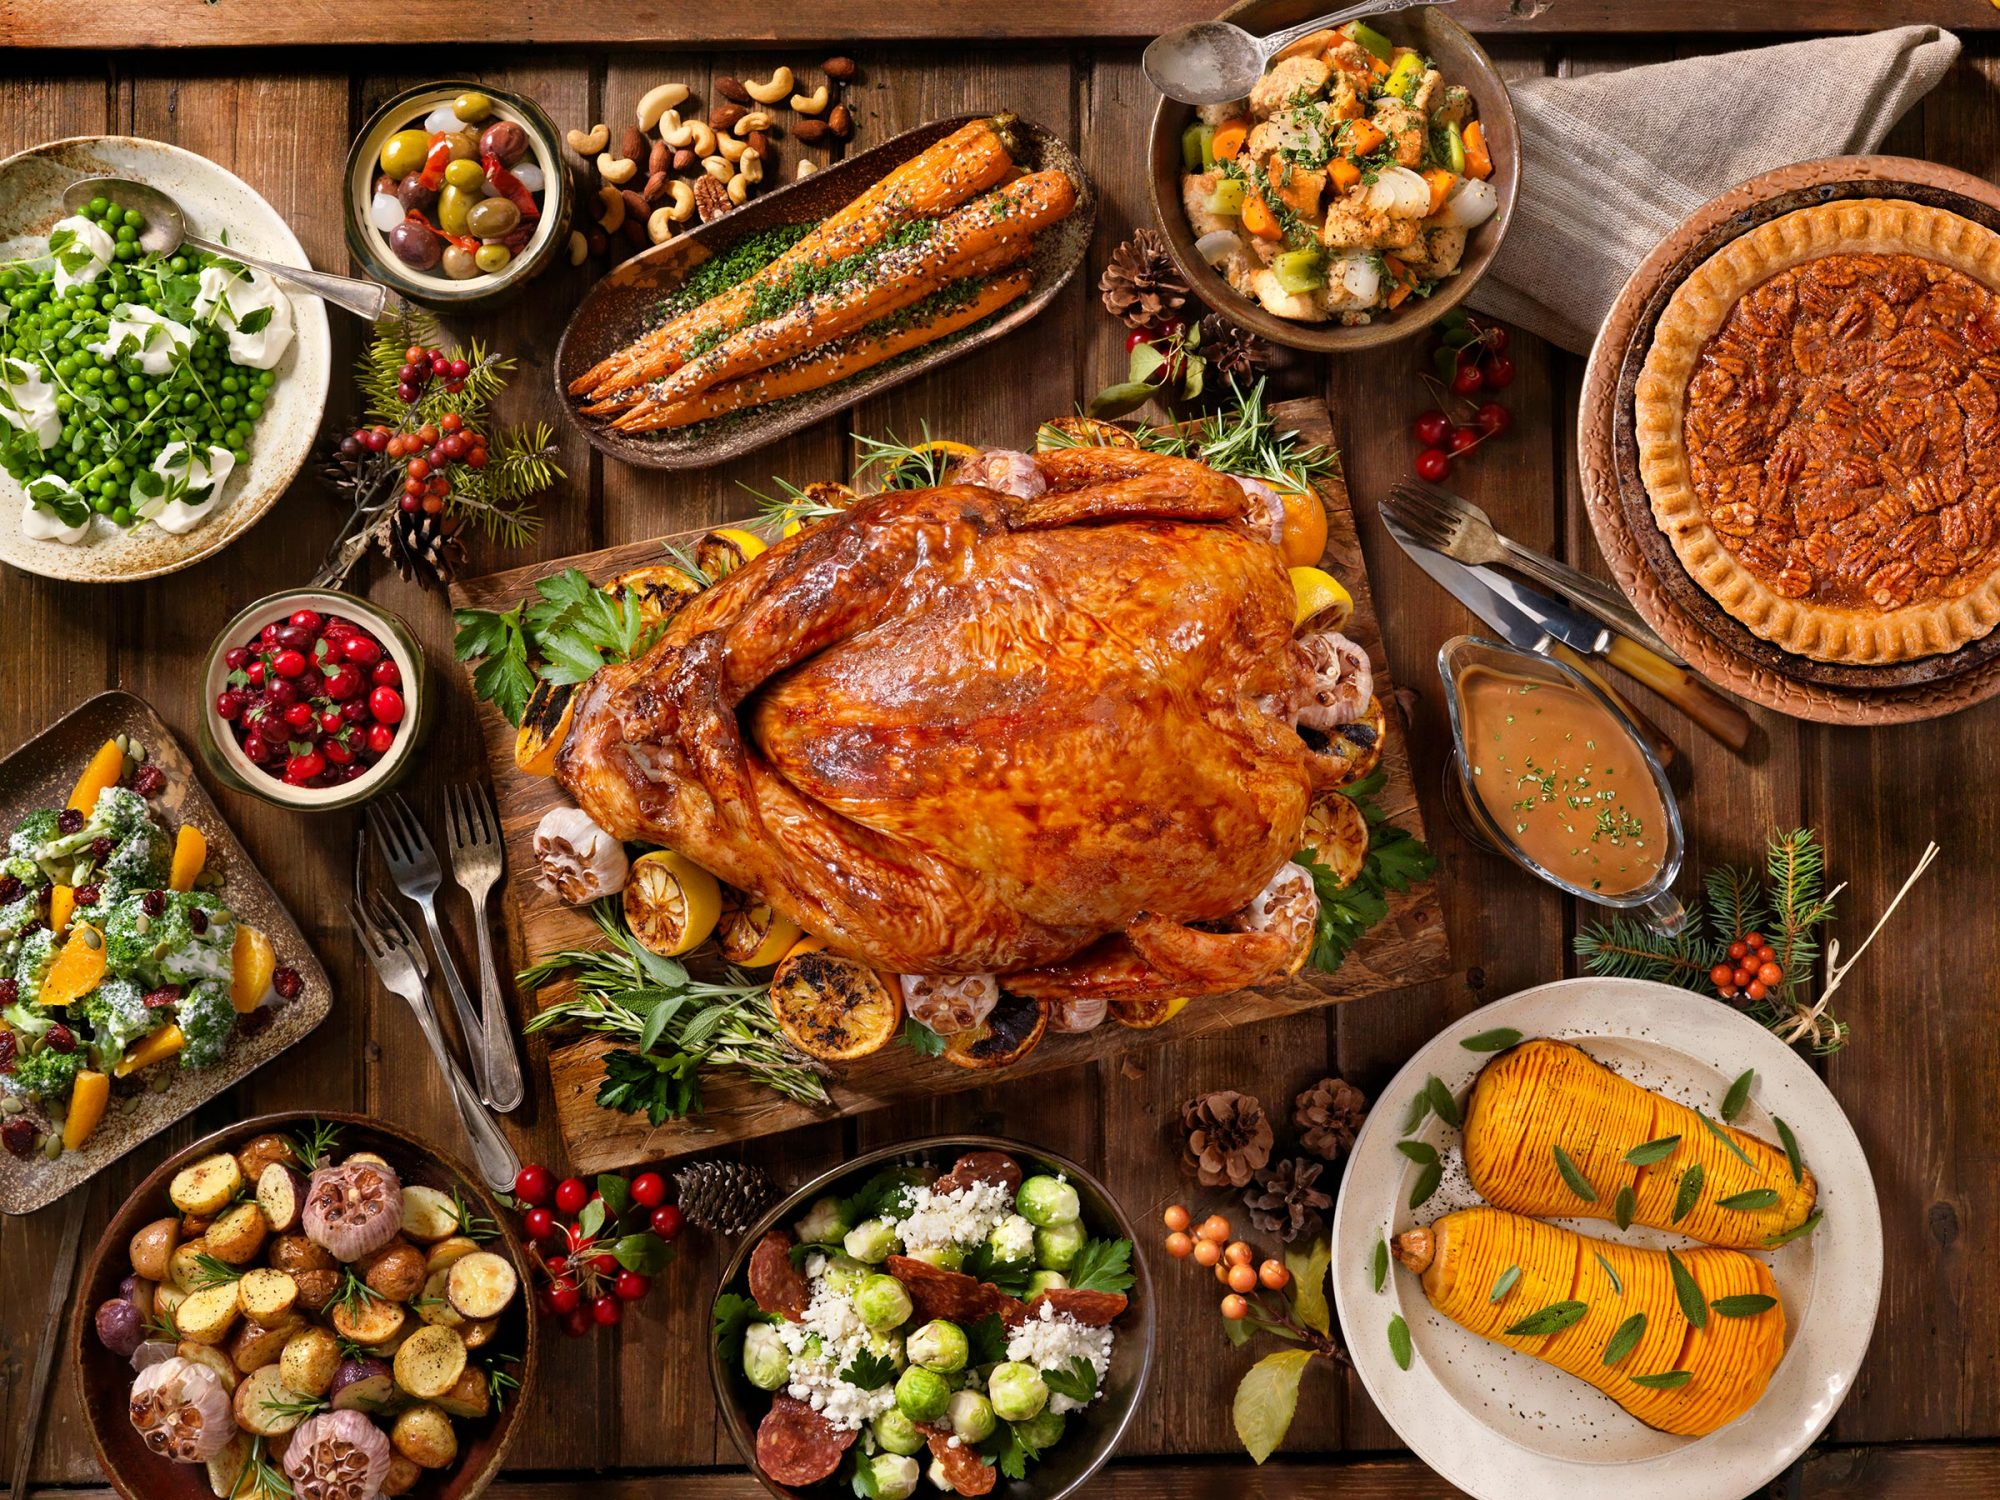 The USDA Says It's No Longer Safe to Eat Thanksgiving Leftovers